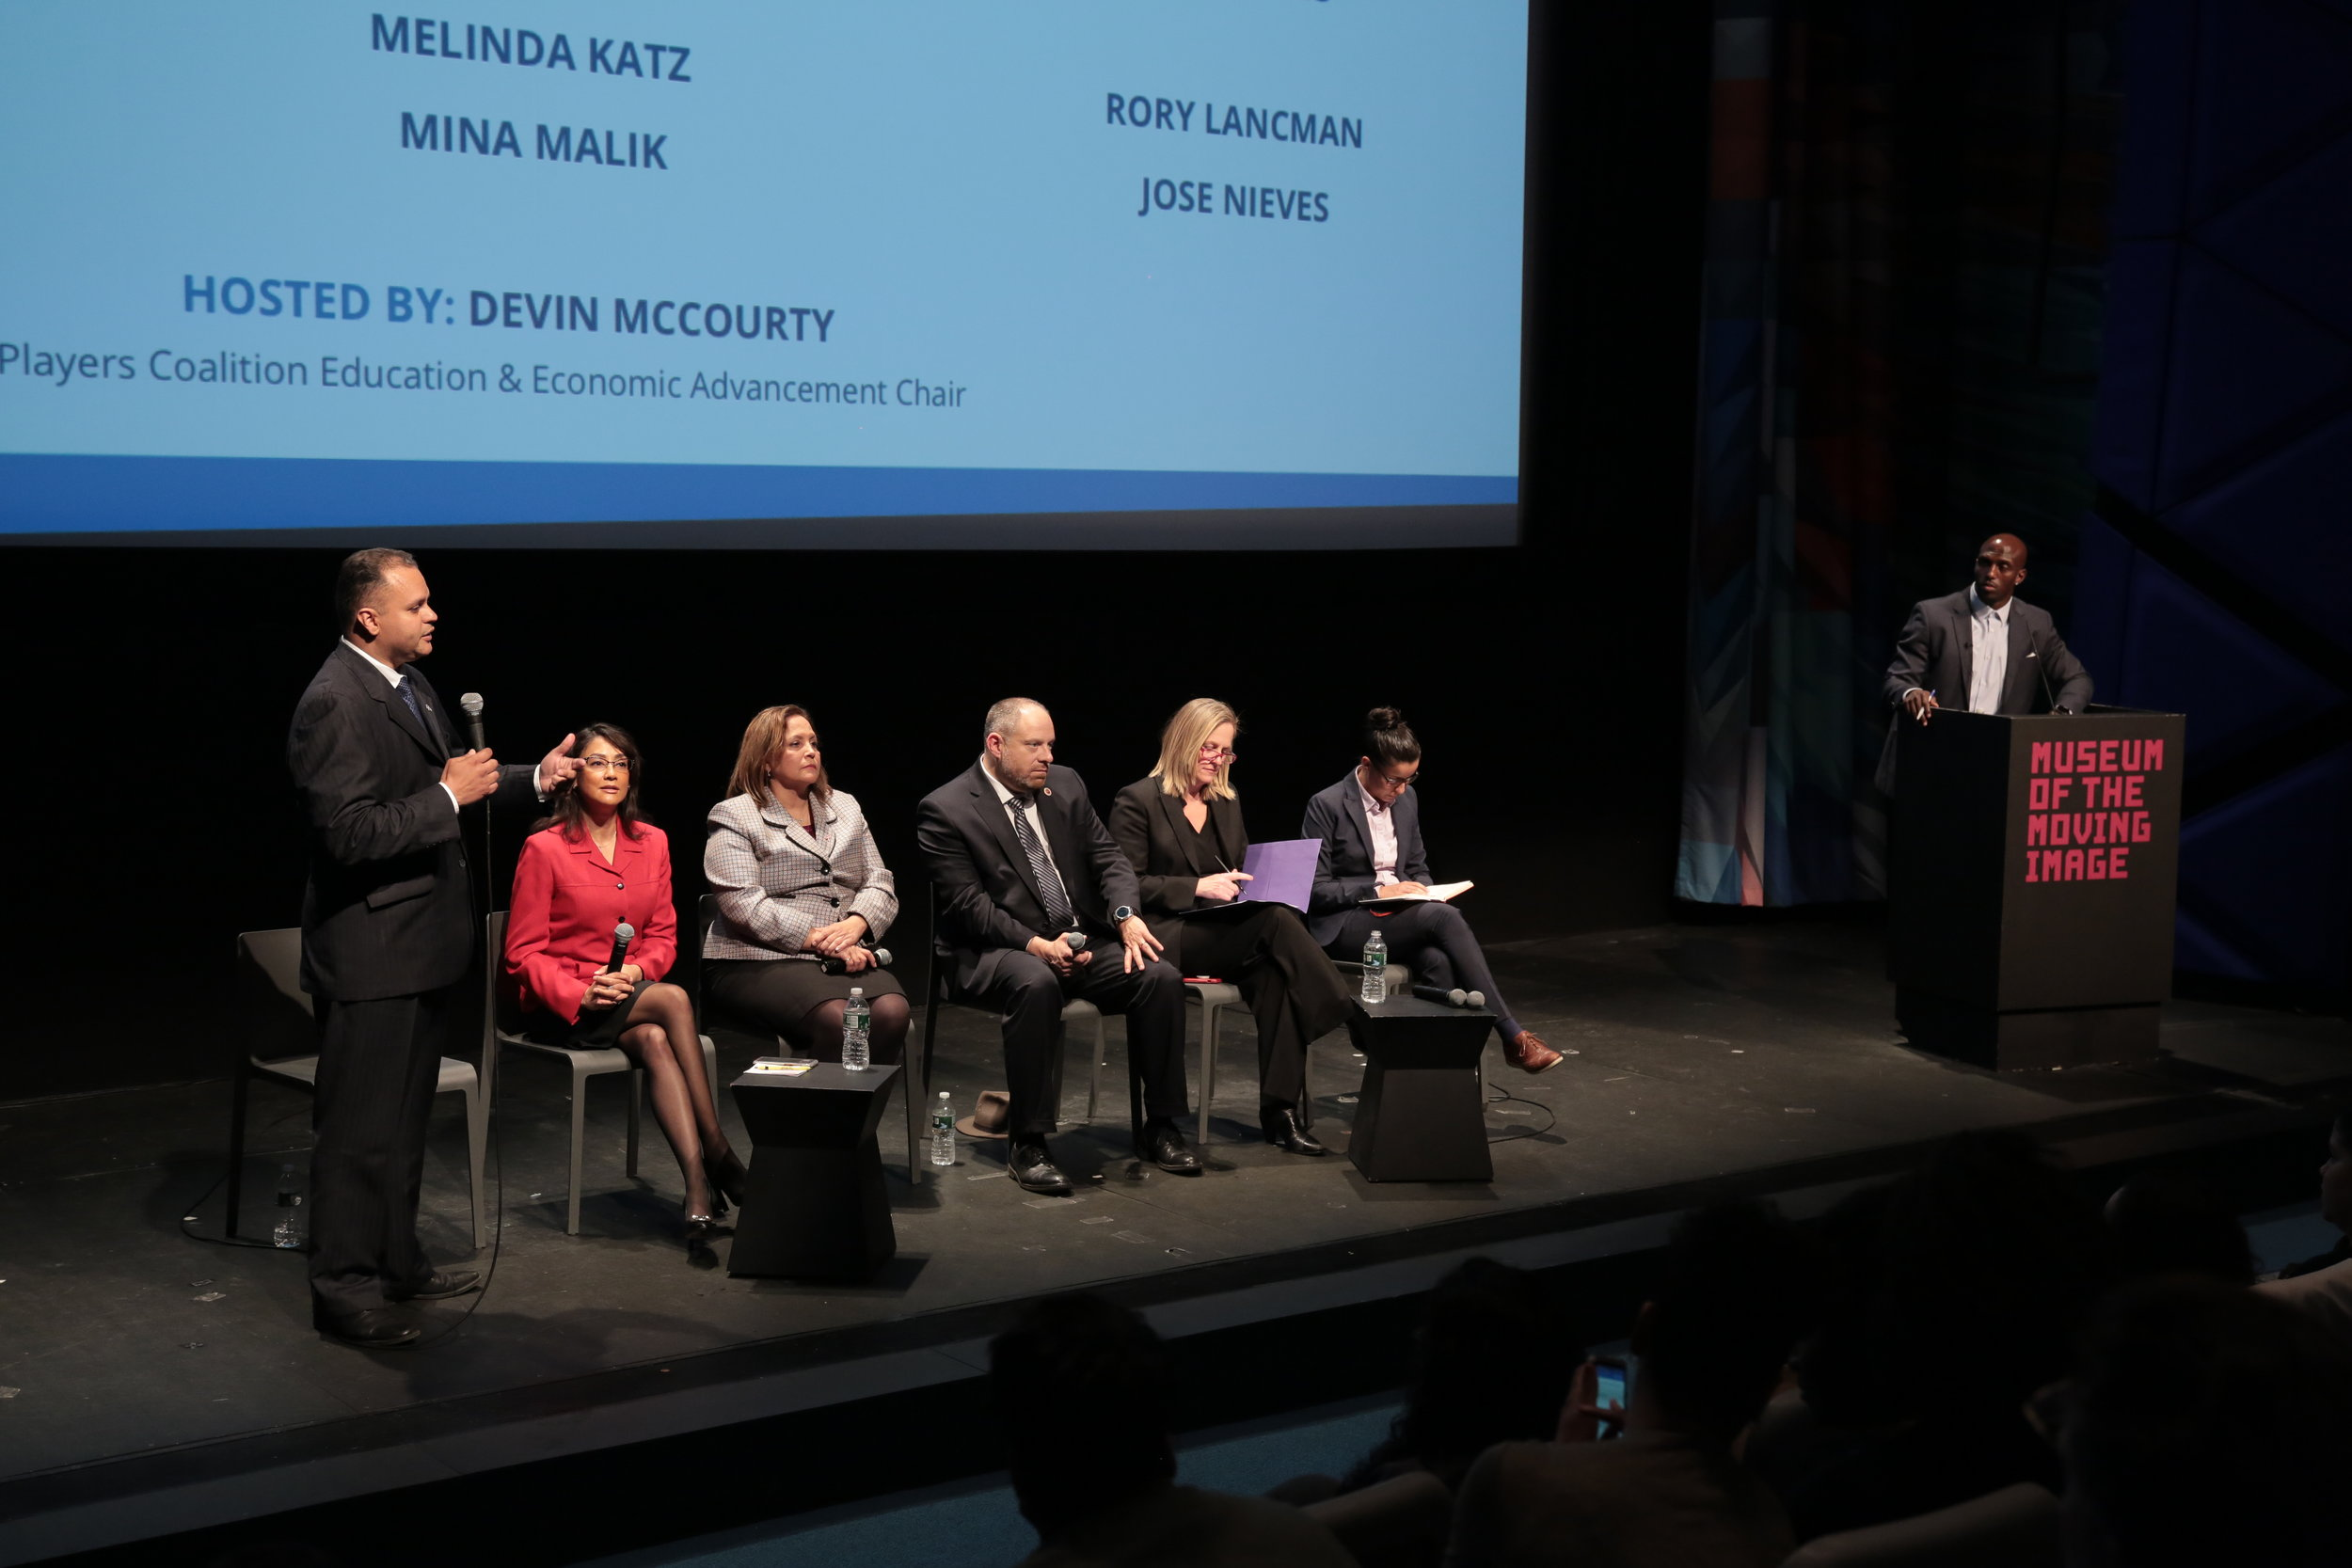 McCourty (right) moderated the forum on May 1, which featured six of the seven candidates for Queens DA: public defender Tiffany Cabán, Queens Borough President Melinda Katz, Councilmember Rory Lancman, attorney Betty Lugo, former Queens prosecutor Mina Malik and former Attorney General's office prosecutor Jose Nieves.